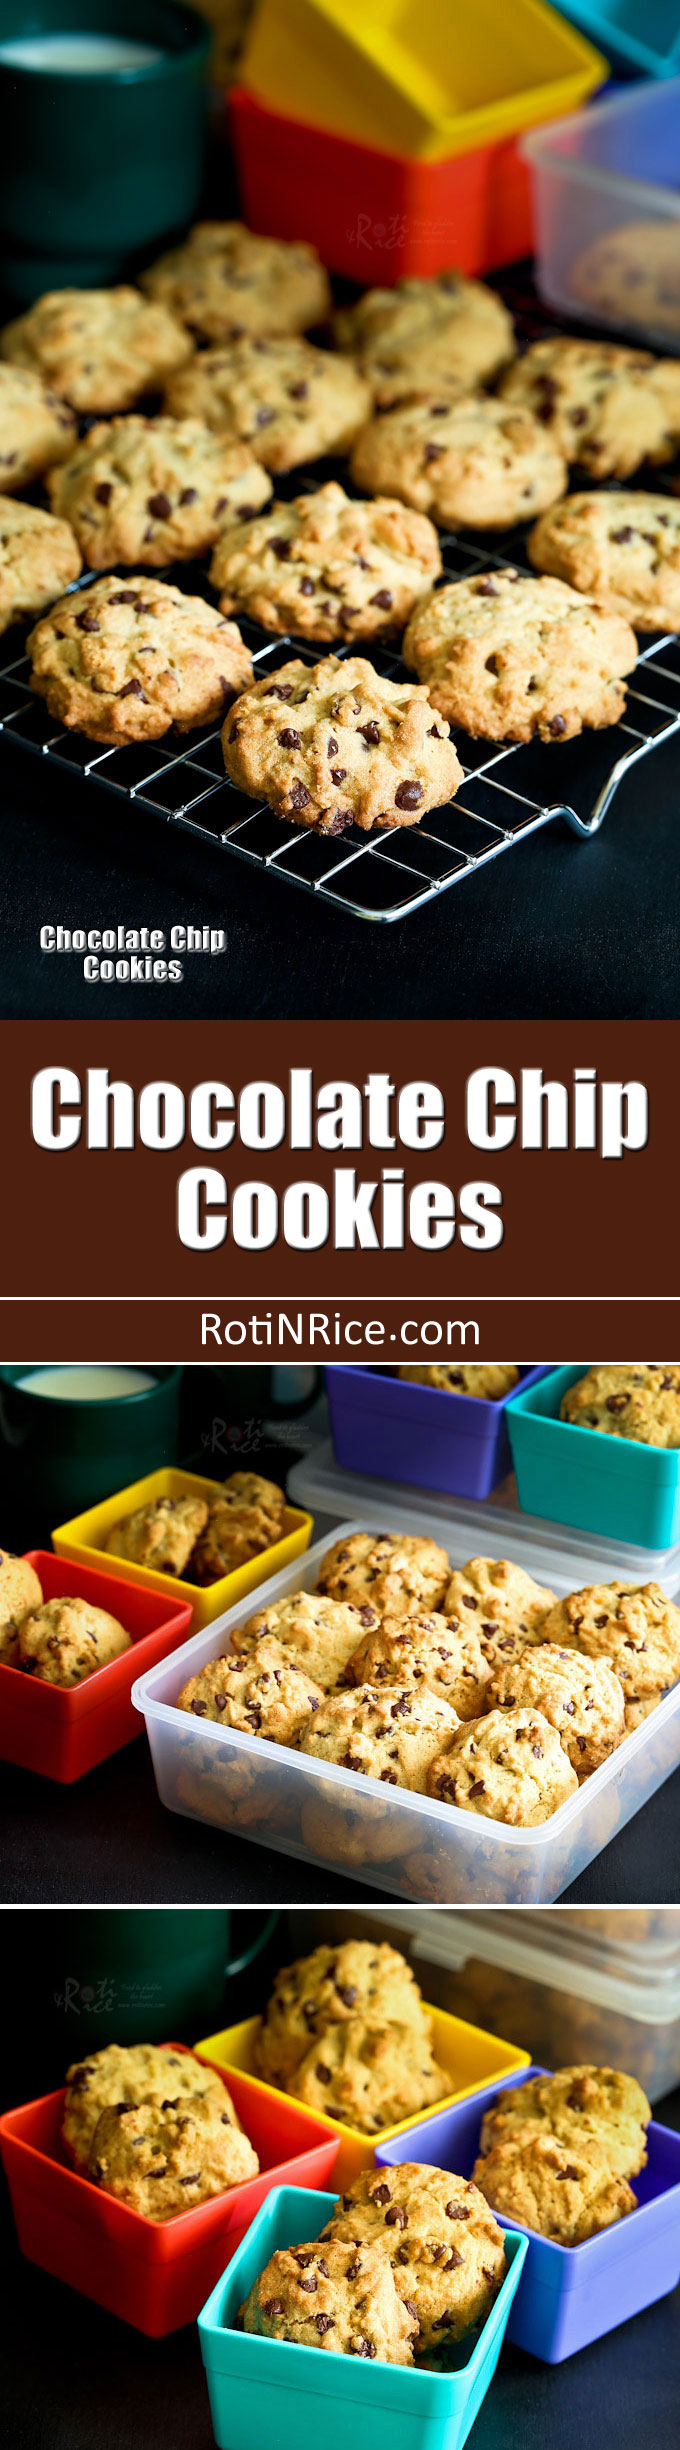 Soft, chewy, not too sweet, and almost addicting Chocolate Chip Cookies. So tasty and comforting, it is hard to stop at just one. | RotiNRice.com